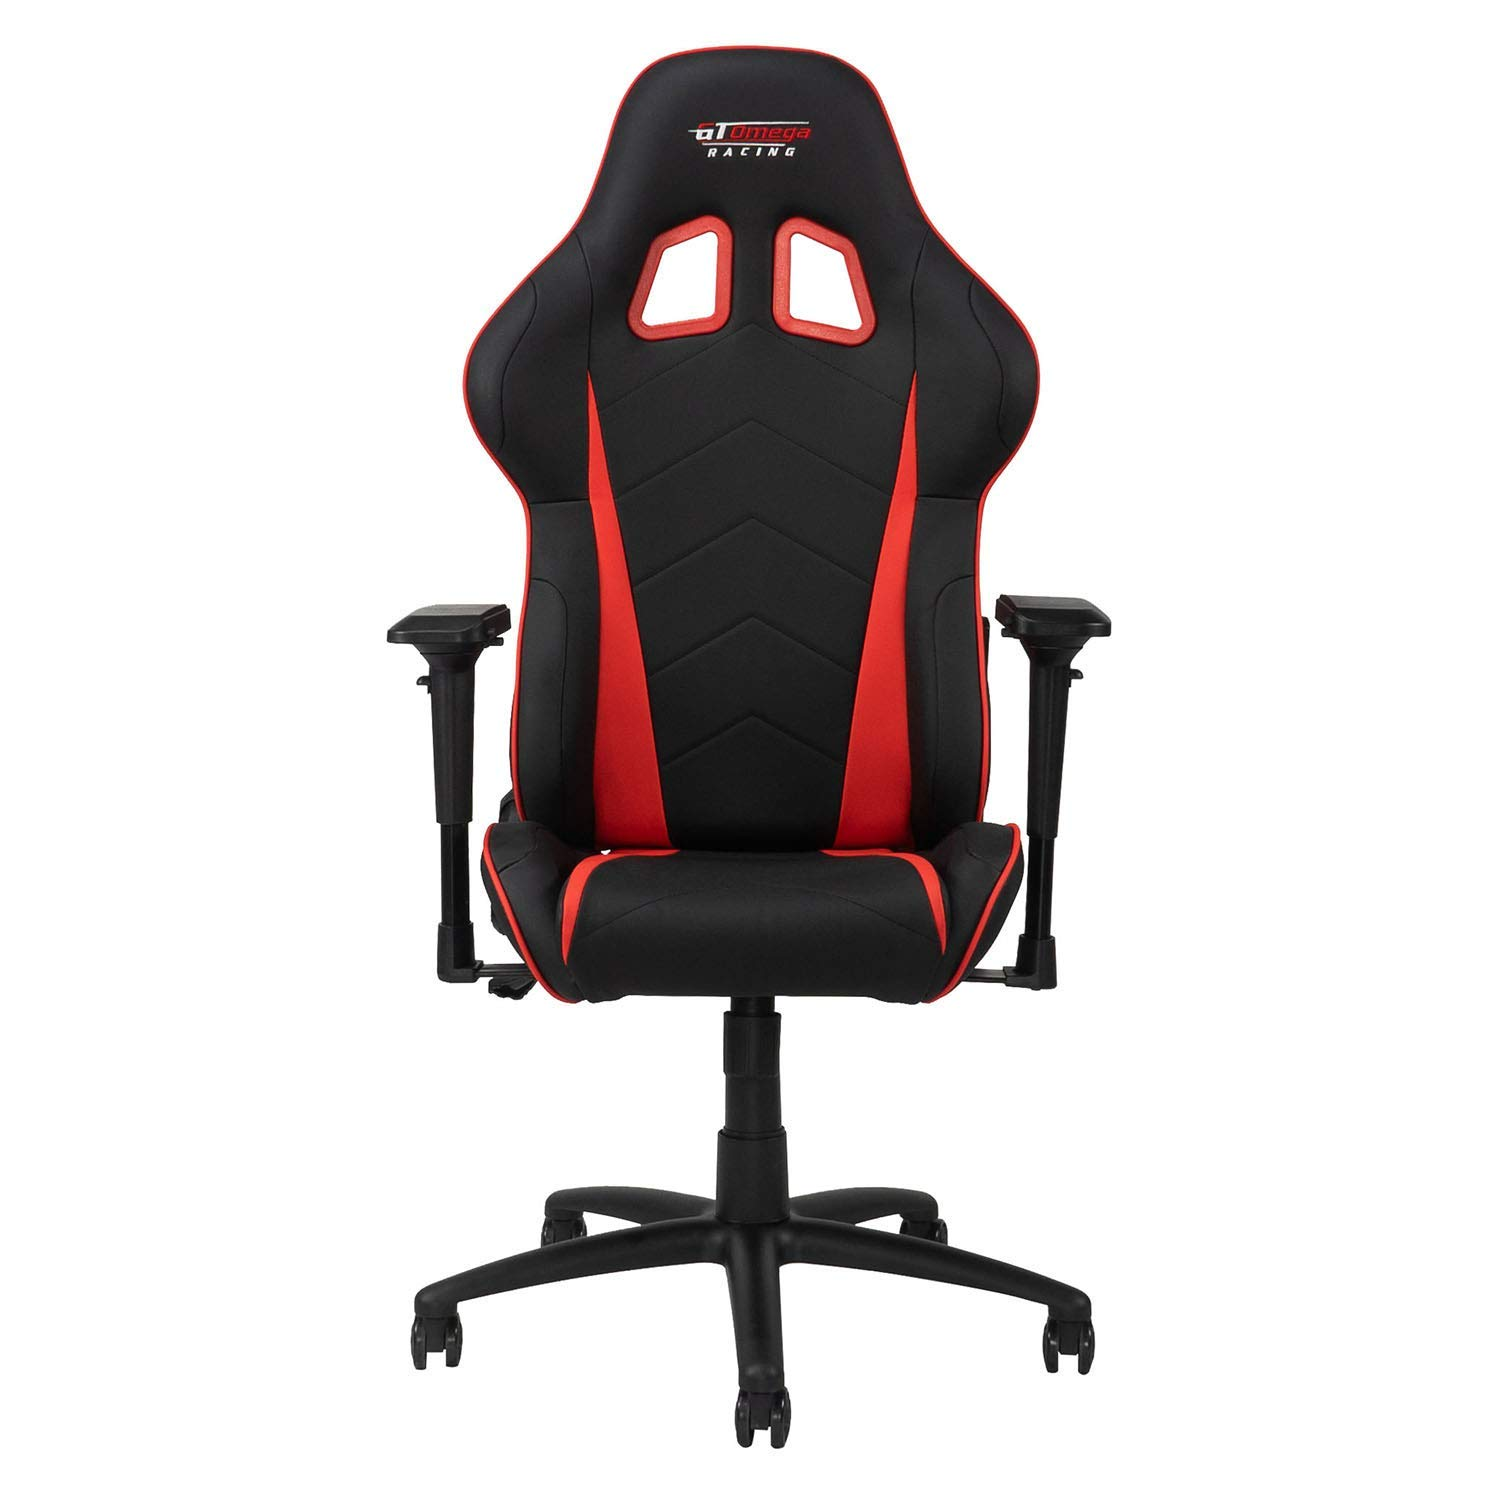 Sports GT Office Home Gaming Executive Office Chair Red /& Black Lumber Support